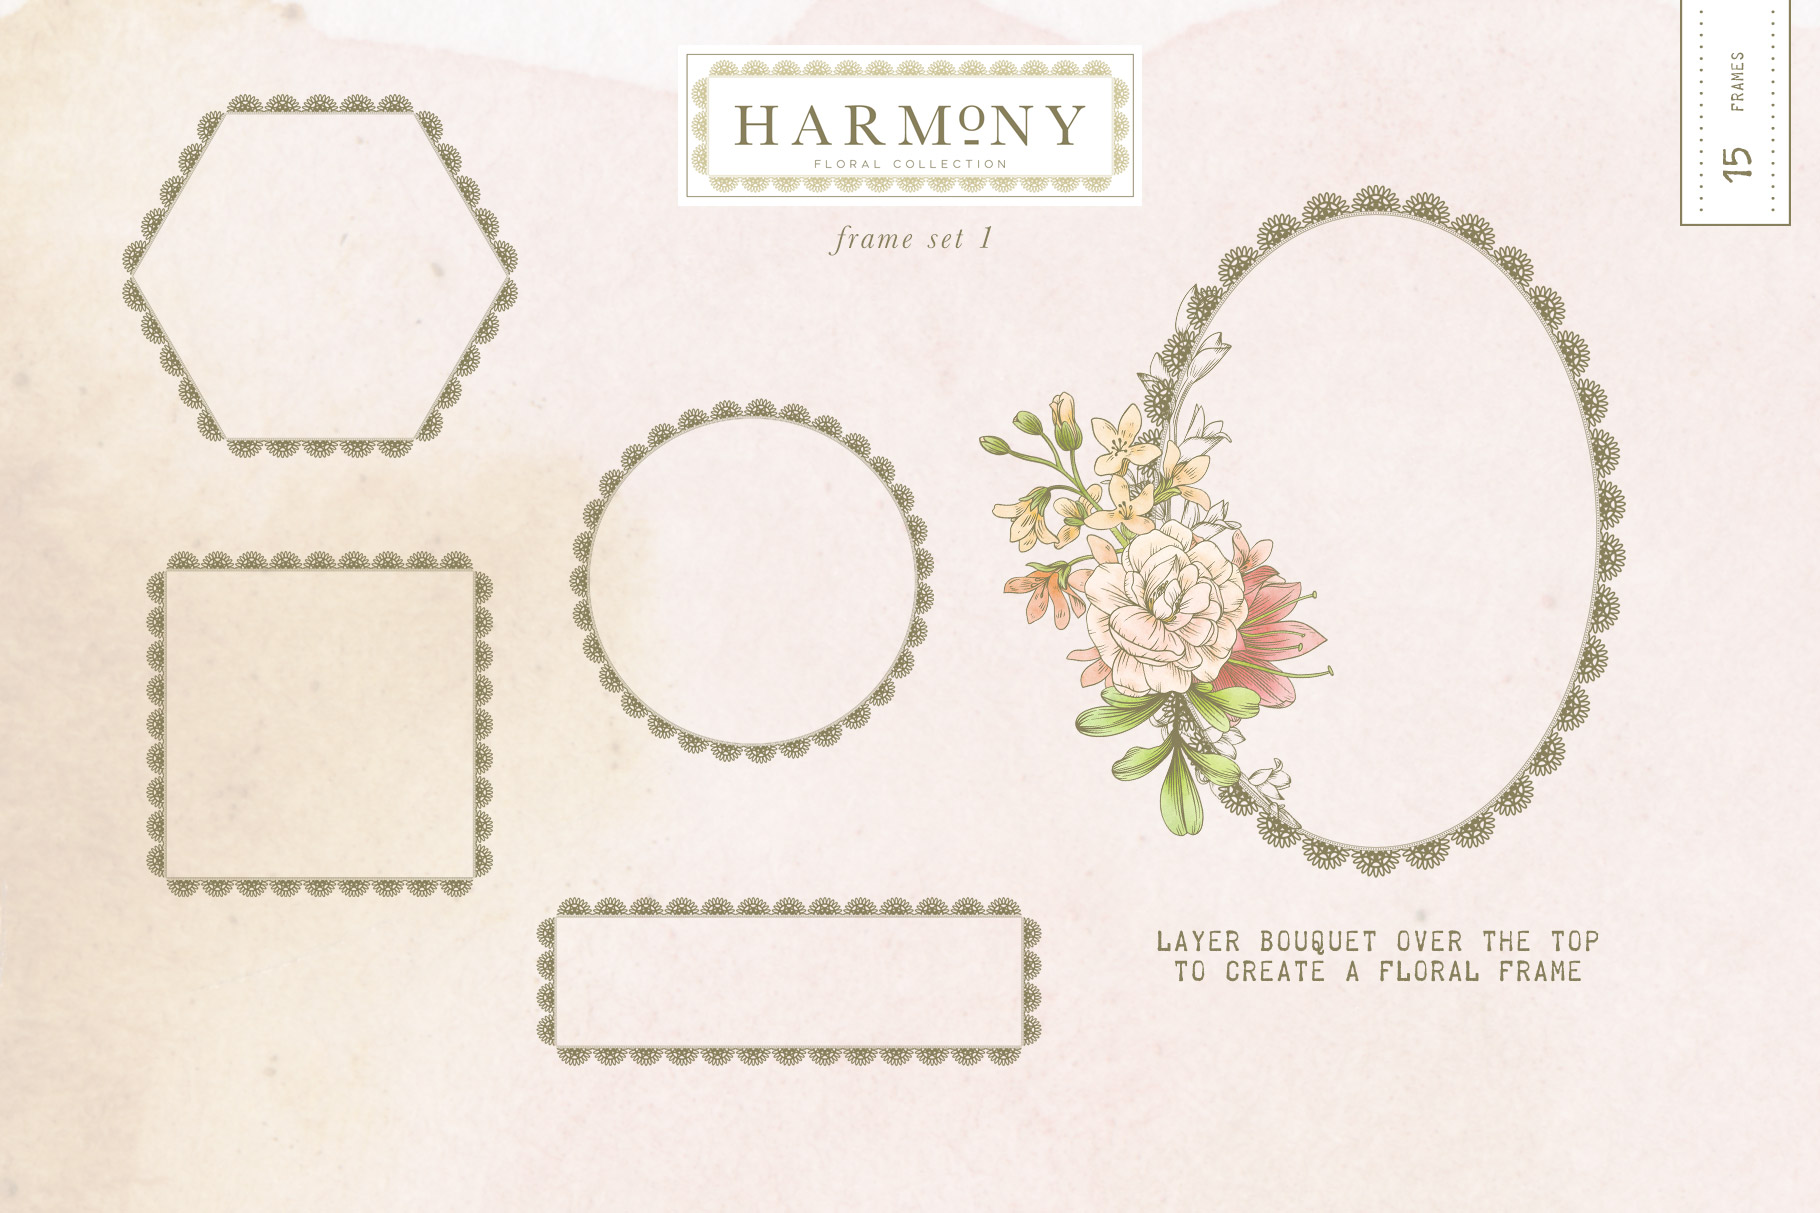 Harmony Floral Collection